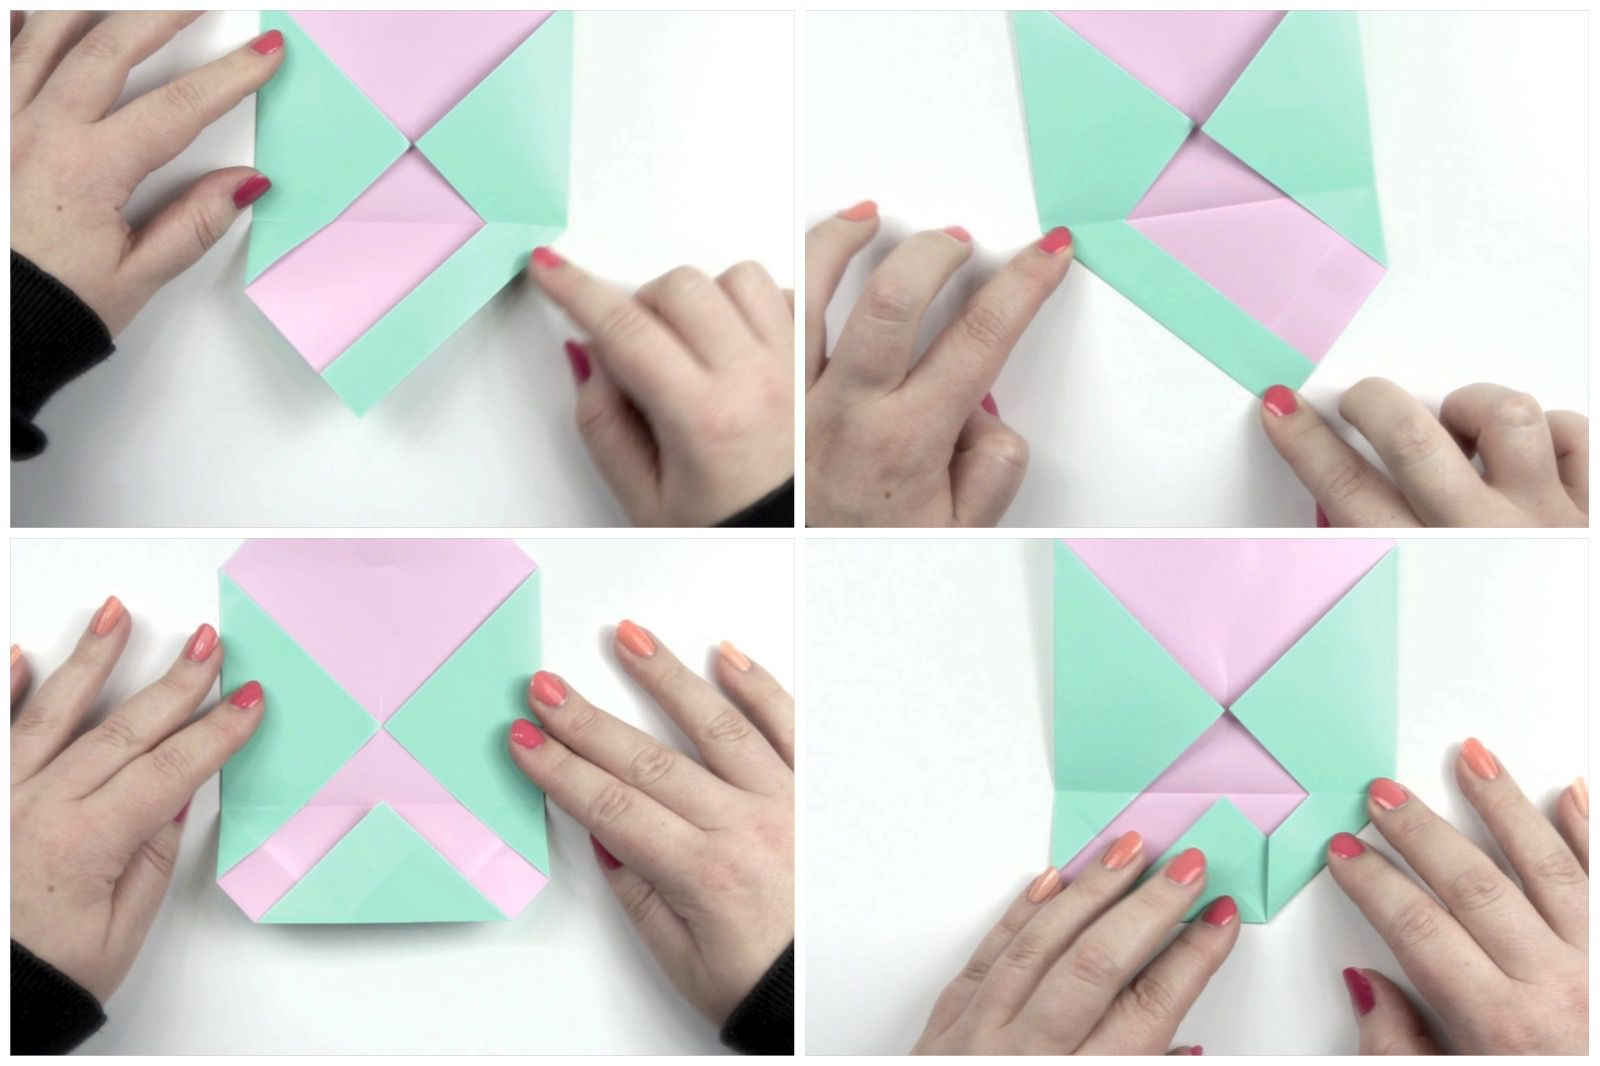 Folding the flap of an origami envelope